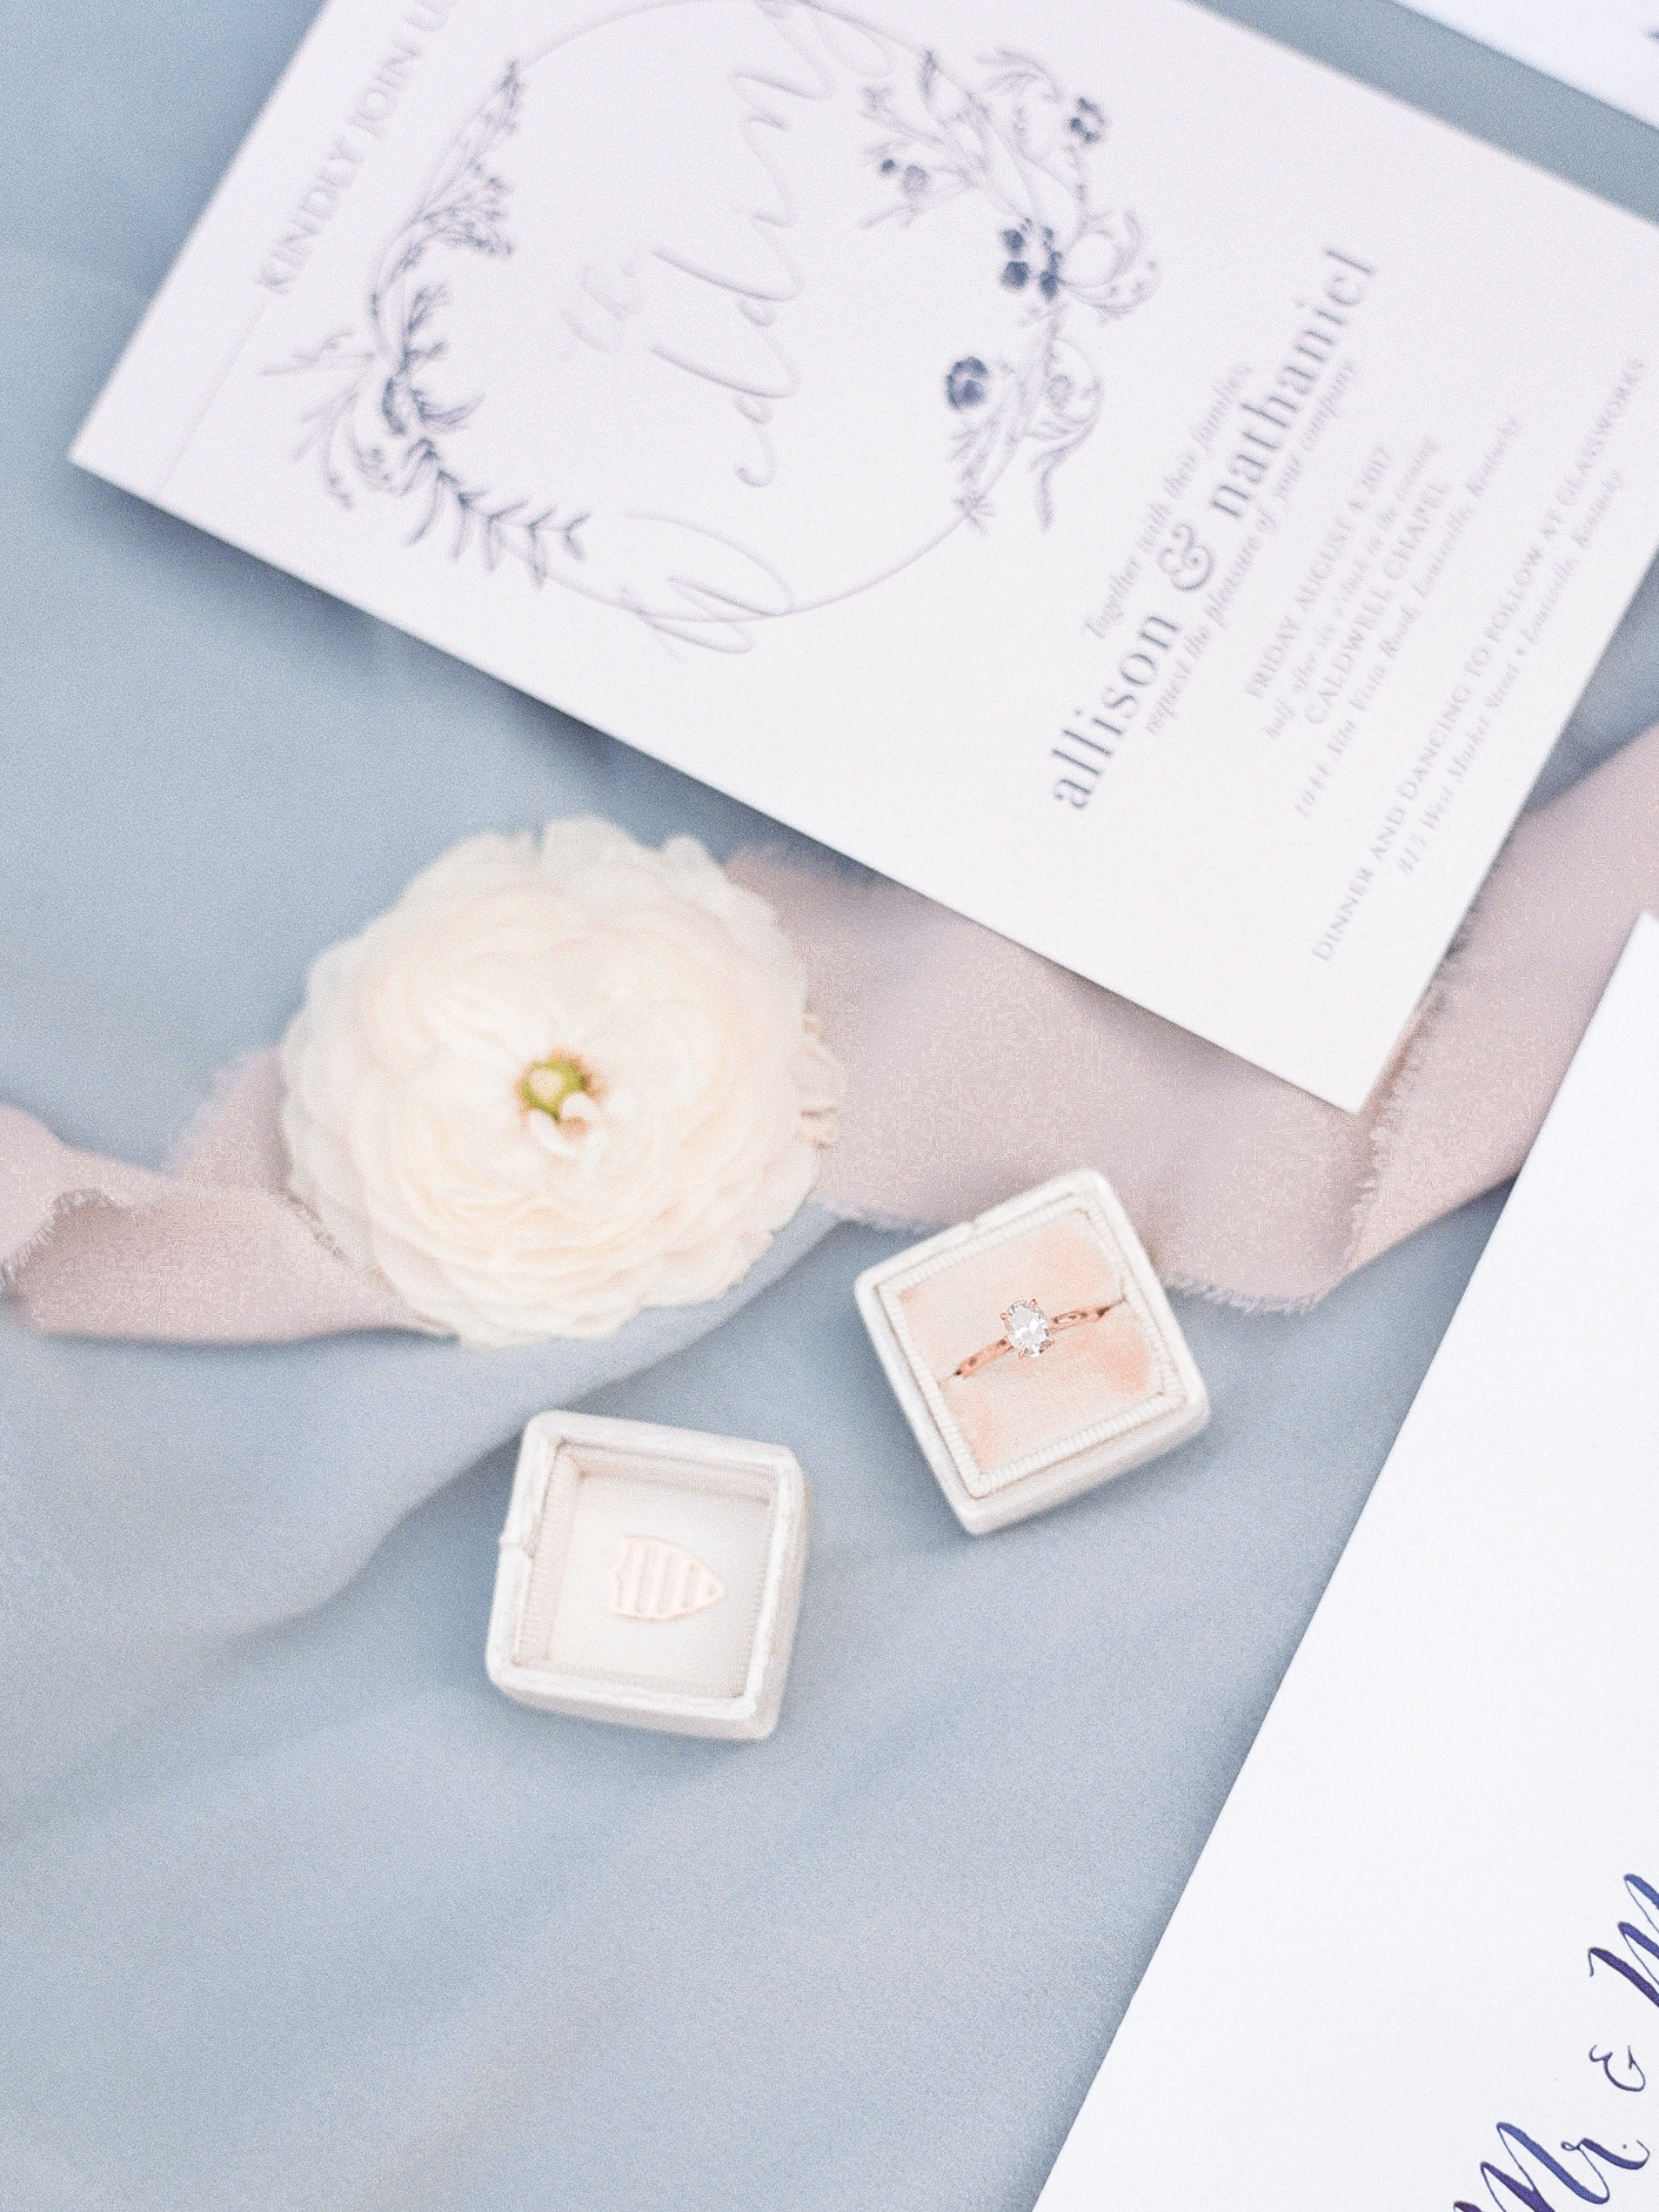 Stationery | Andrea Haughey Design  Photography | Ava Maria Photography  Ring Box | The Mrs. Box  Florals | Flowers & Thyme  Textiles | Tono & co.  Planning & Styling | To Be Loved Events